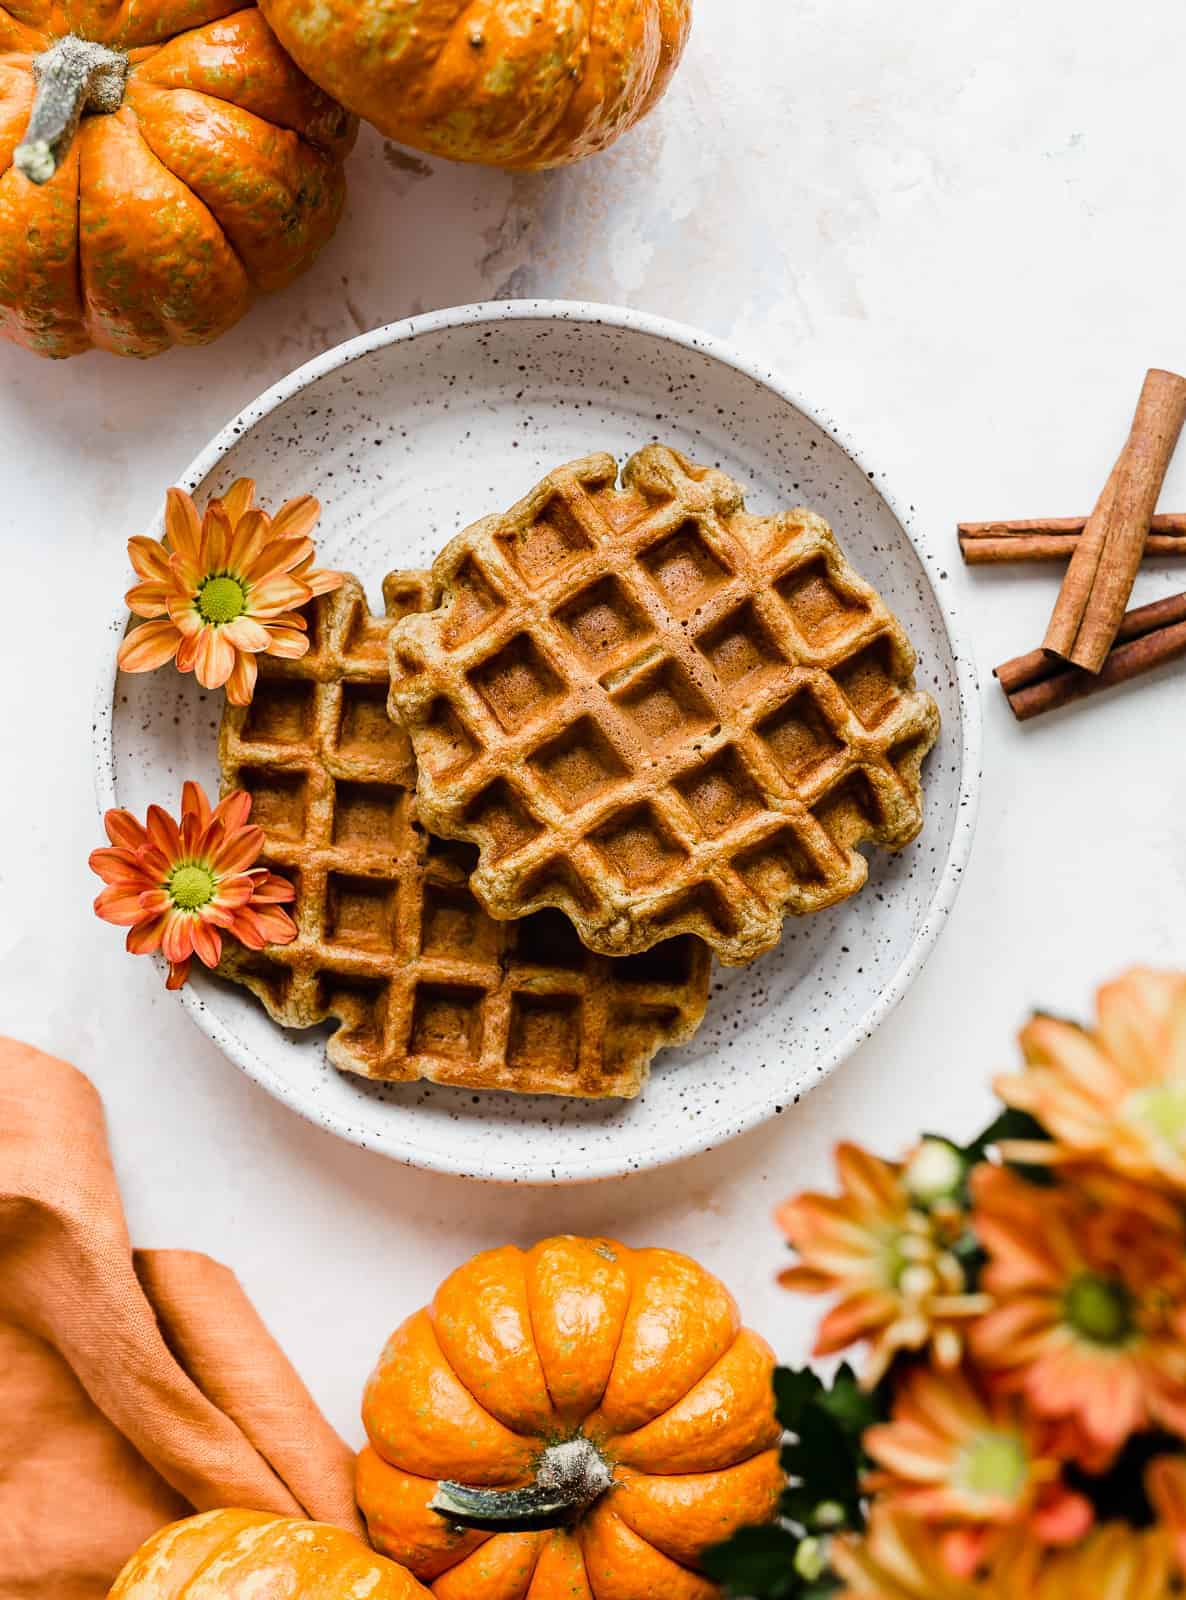 Pumpkin Waffles against a white background.